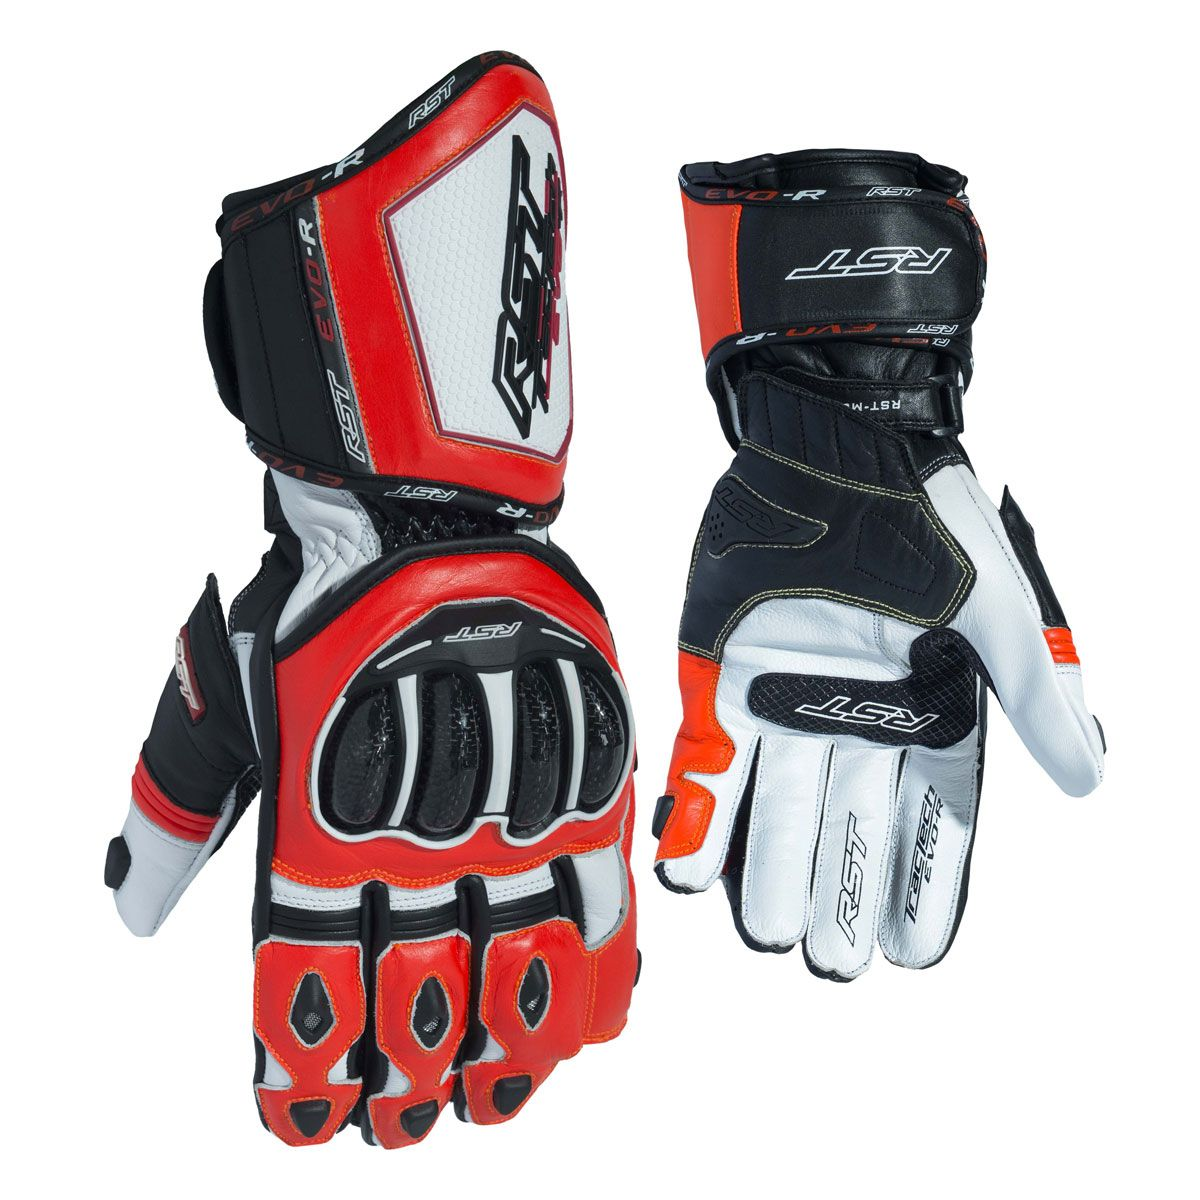 RST Tractech Evo R CE Leather Gloves White / Black / Fluo Red